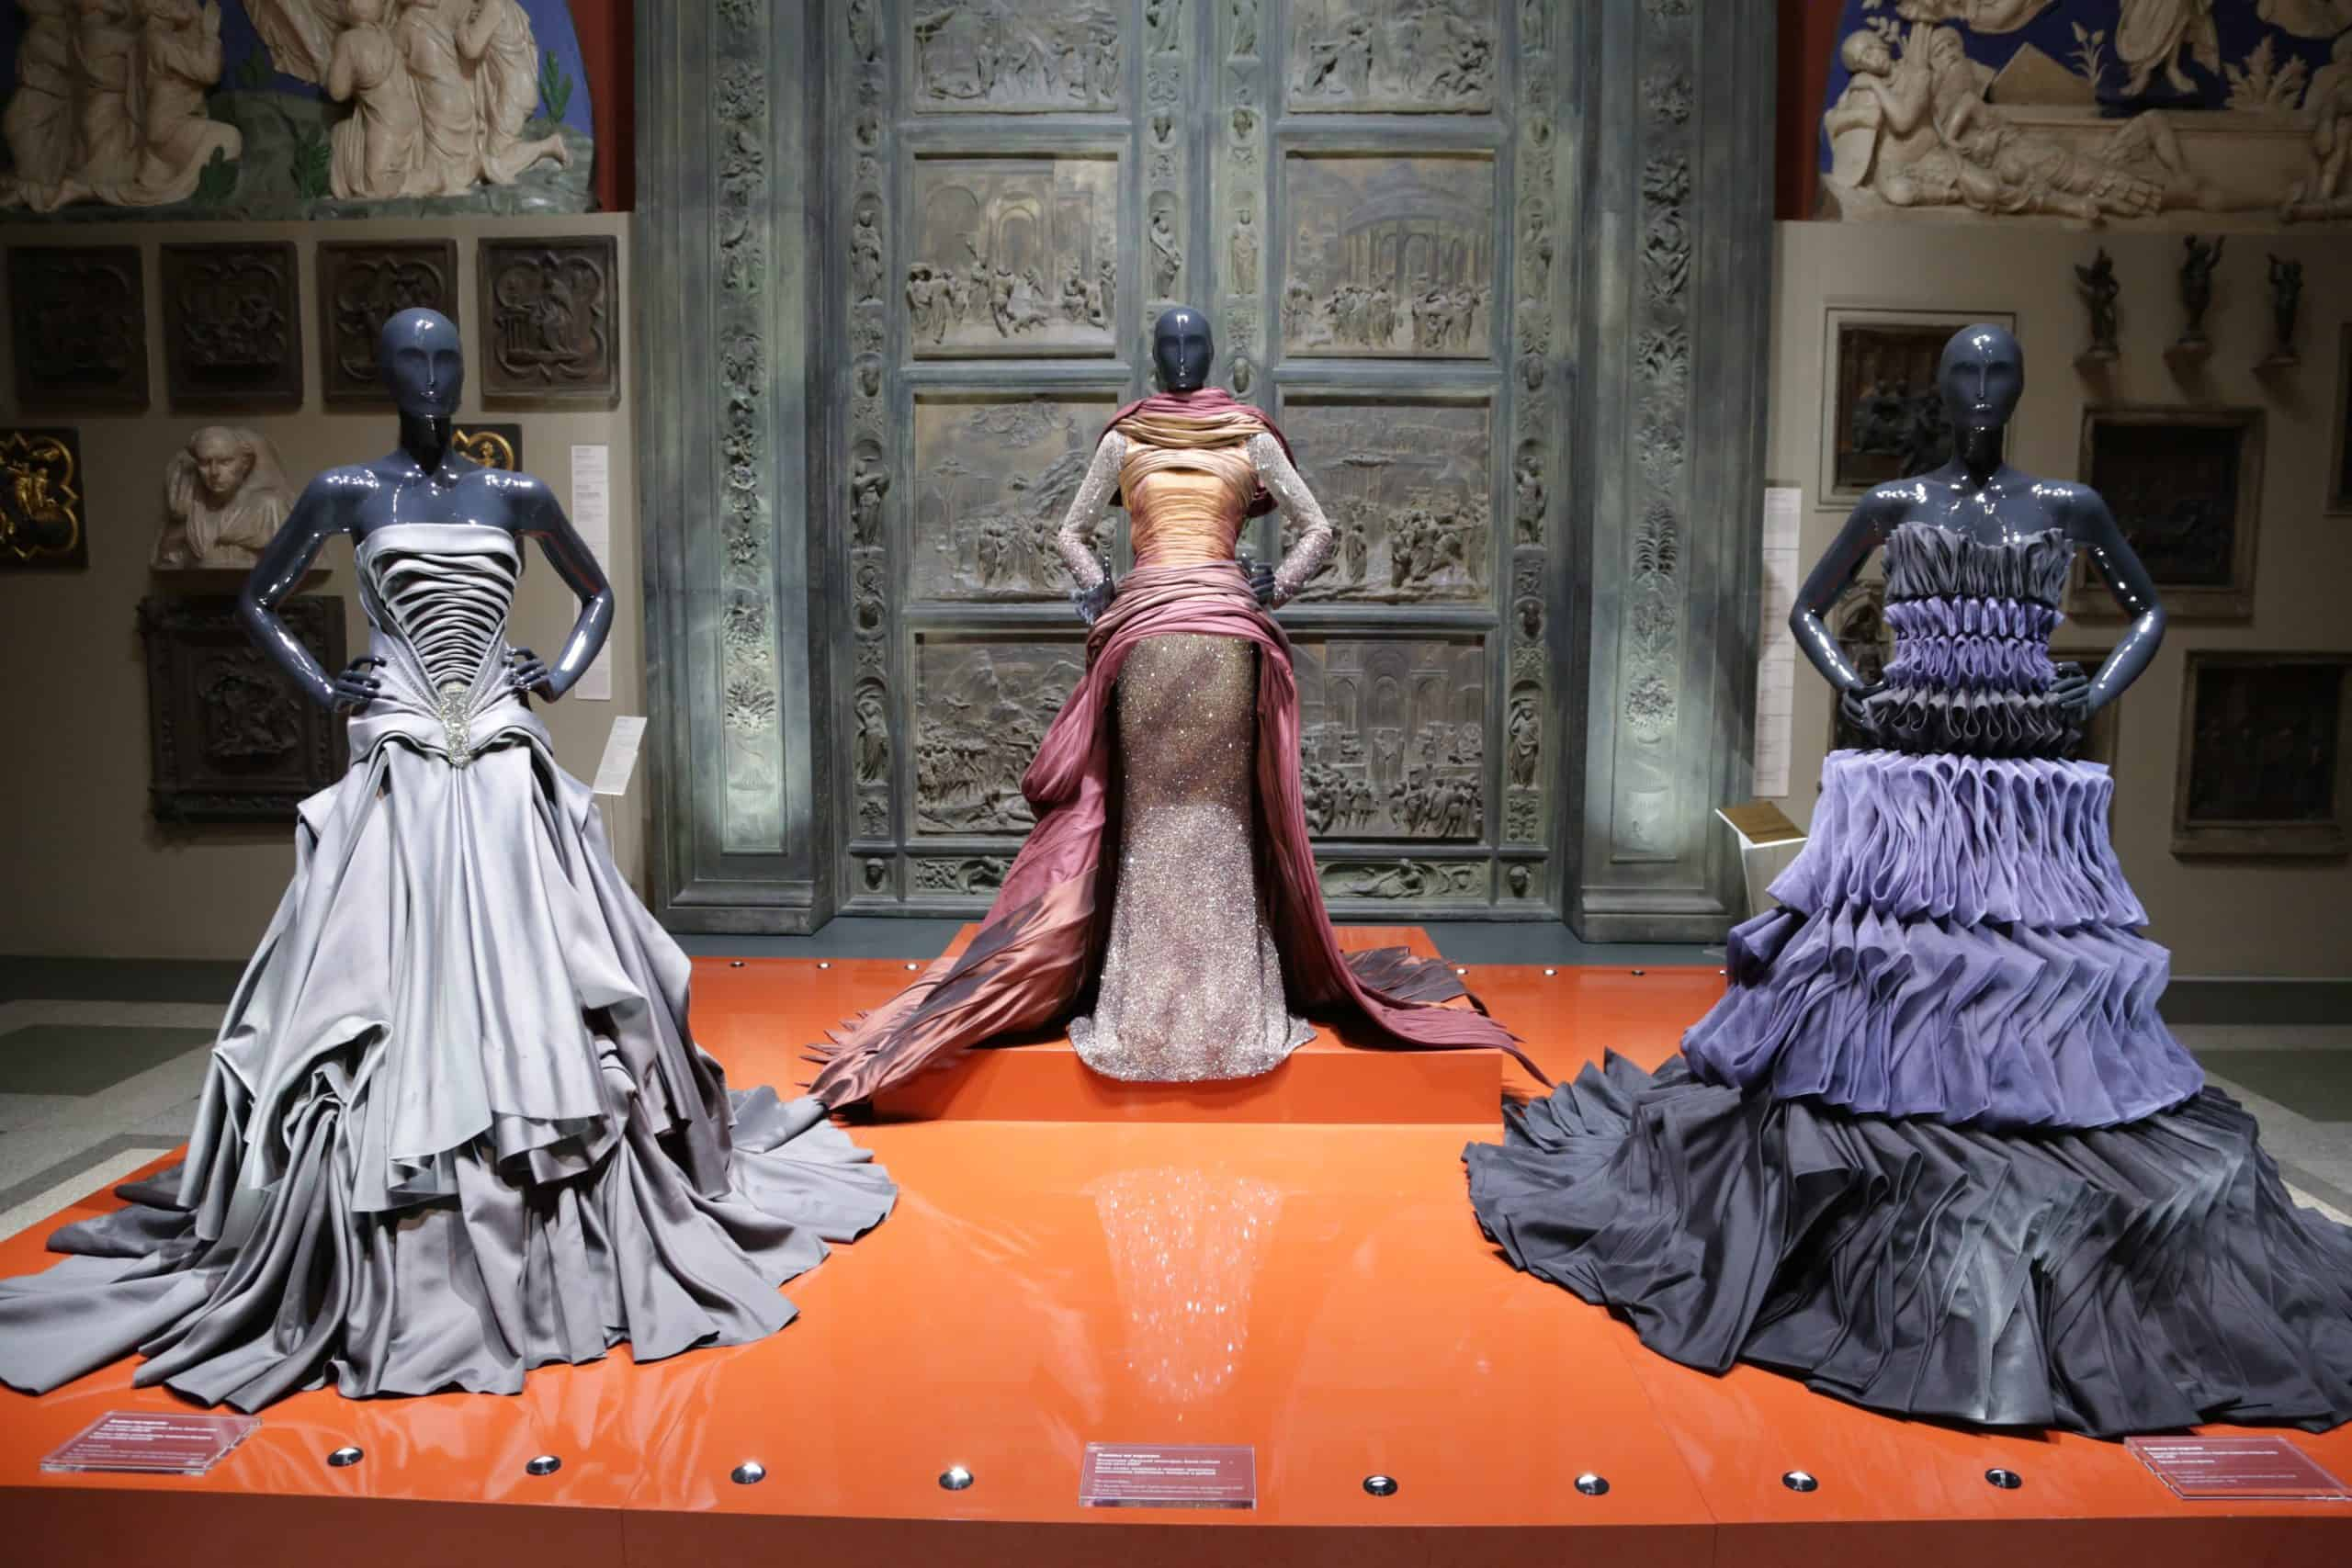 theatre mannequin museum art exhibition of fashion dress scaled